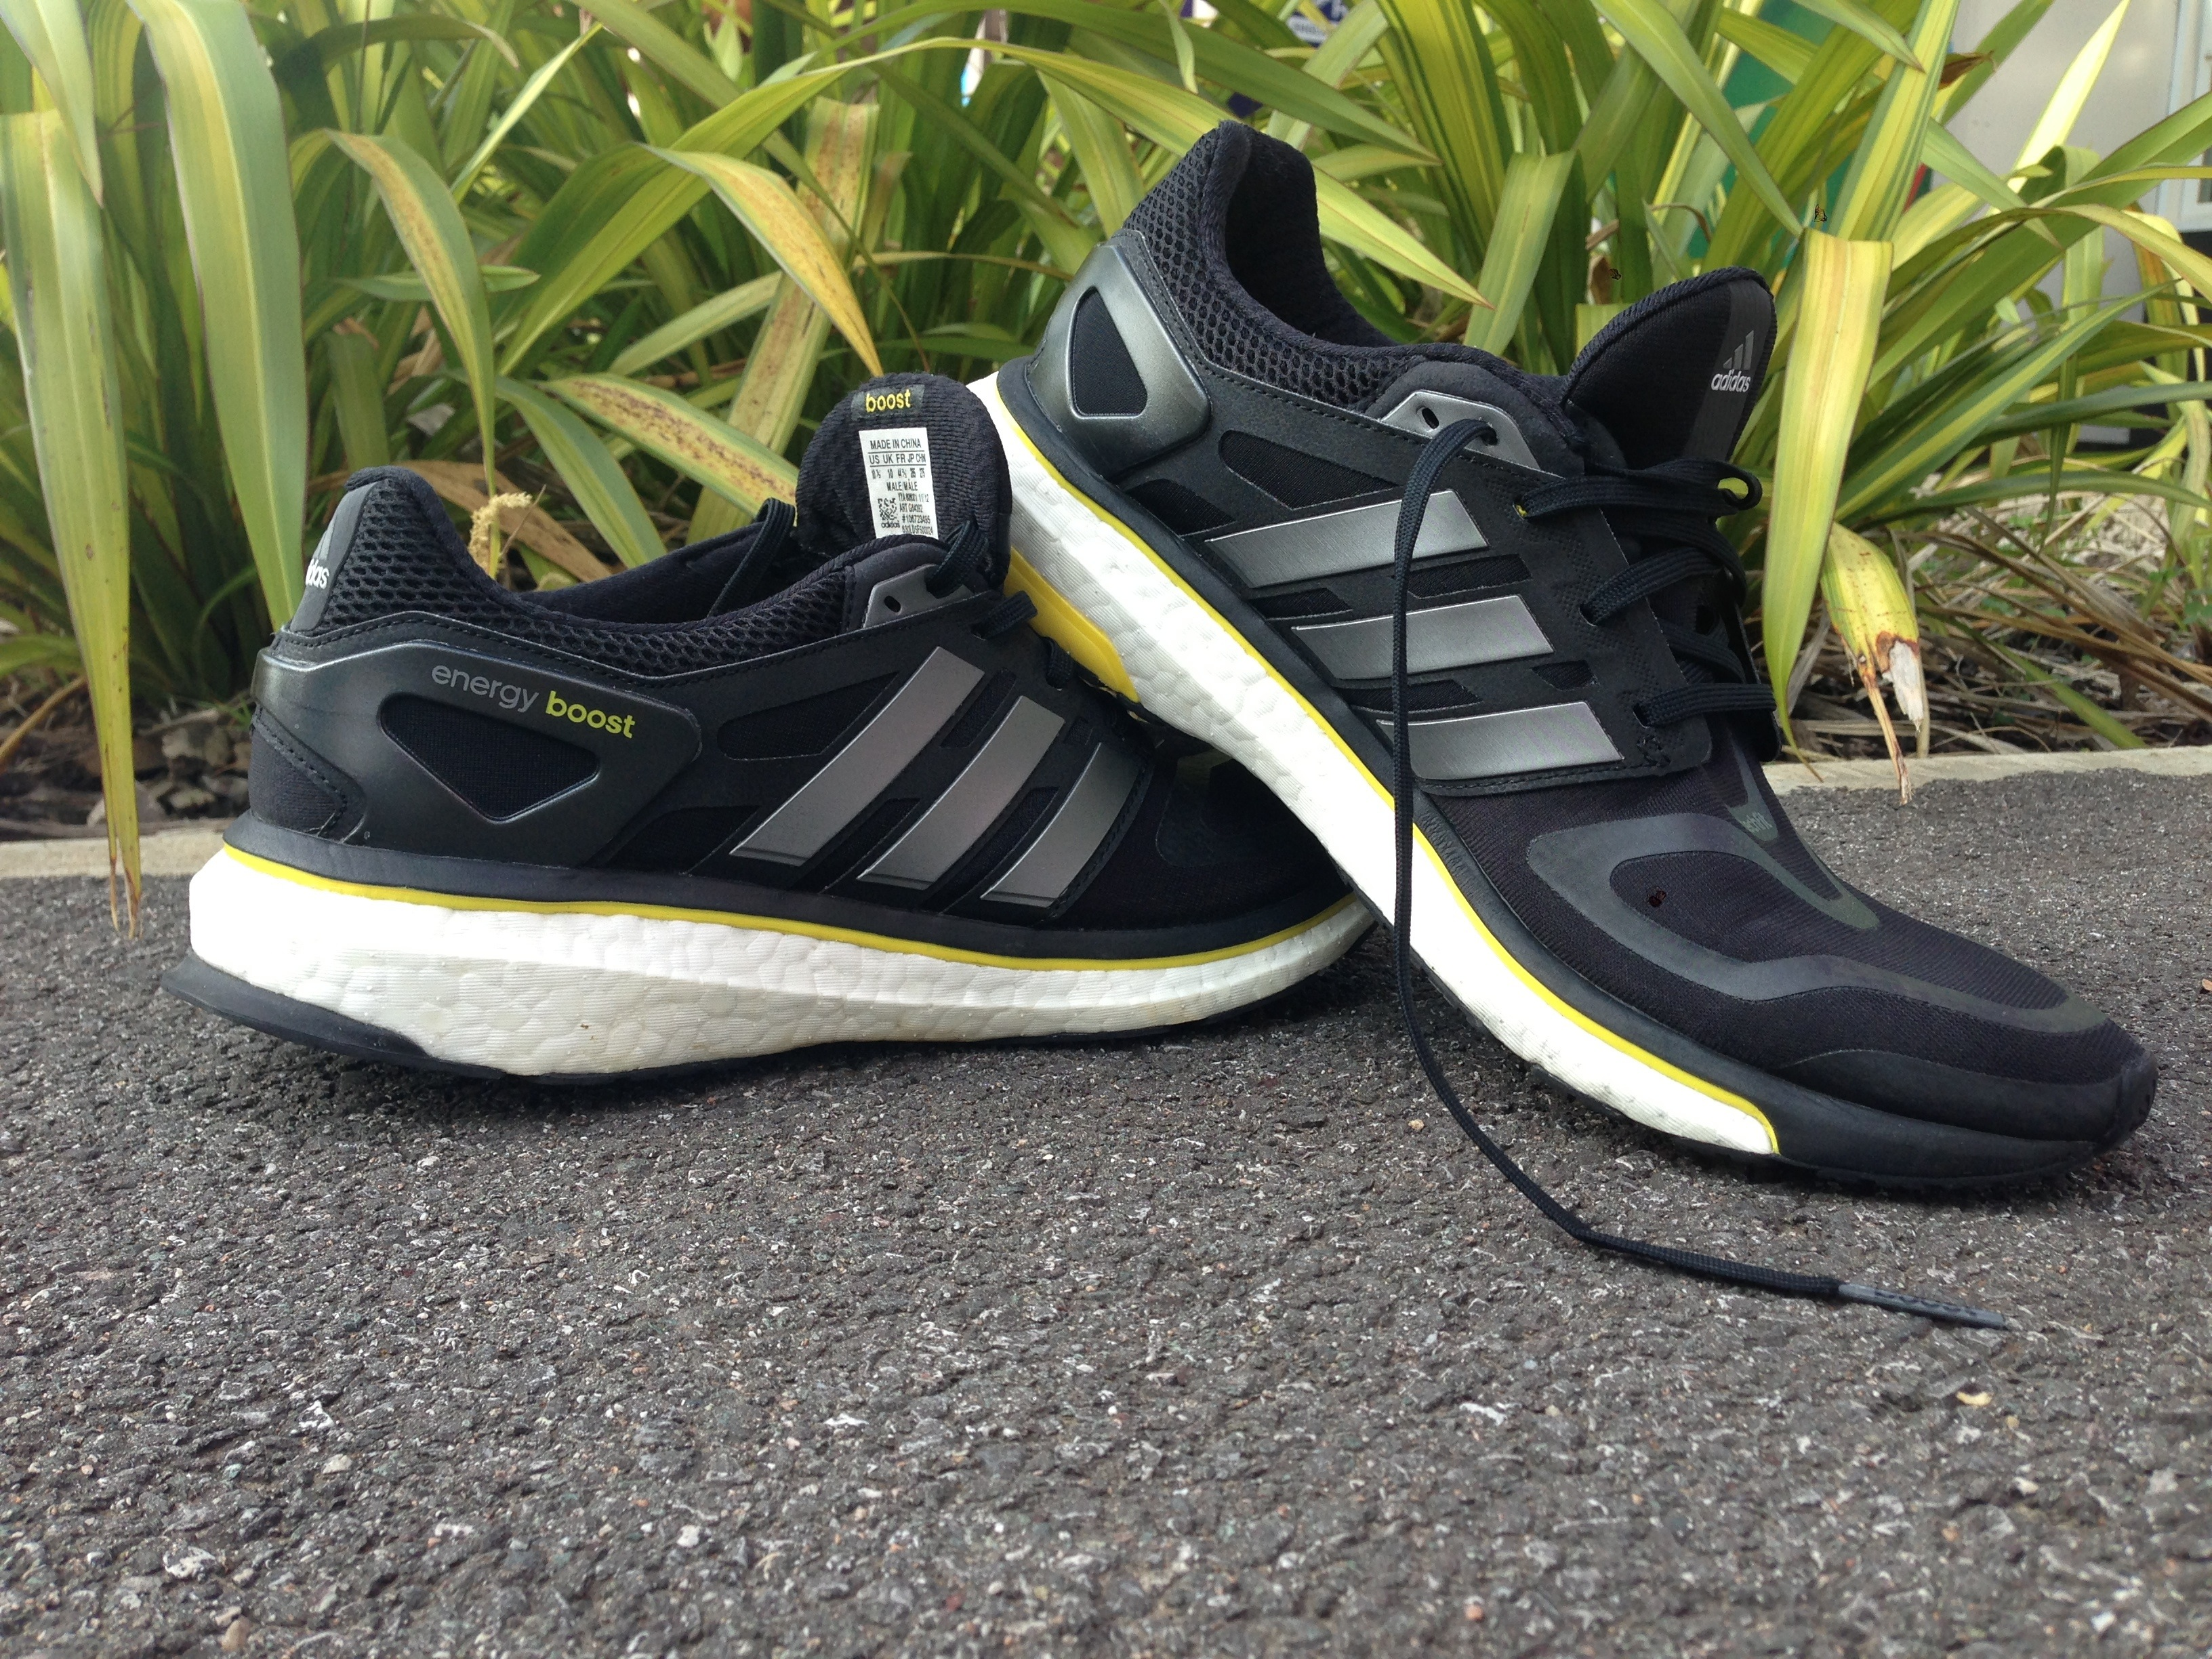 adidas energy boost running shoes 2013